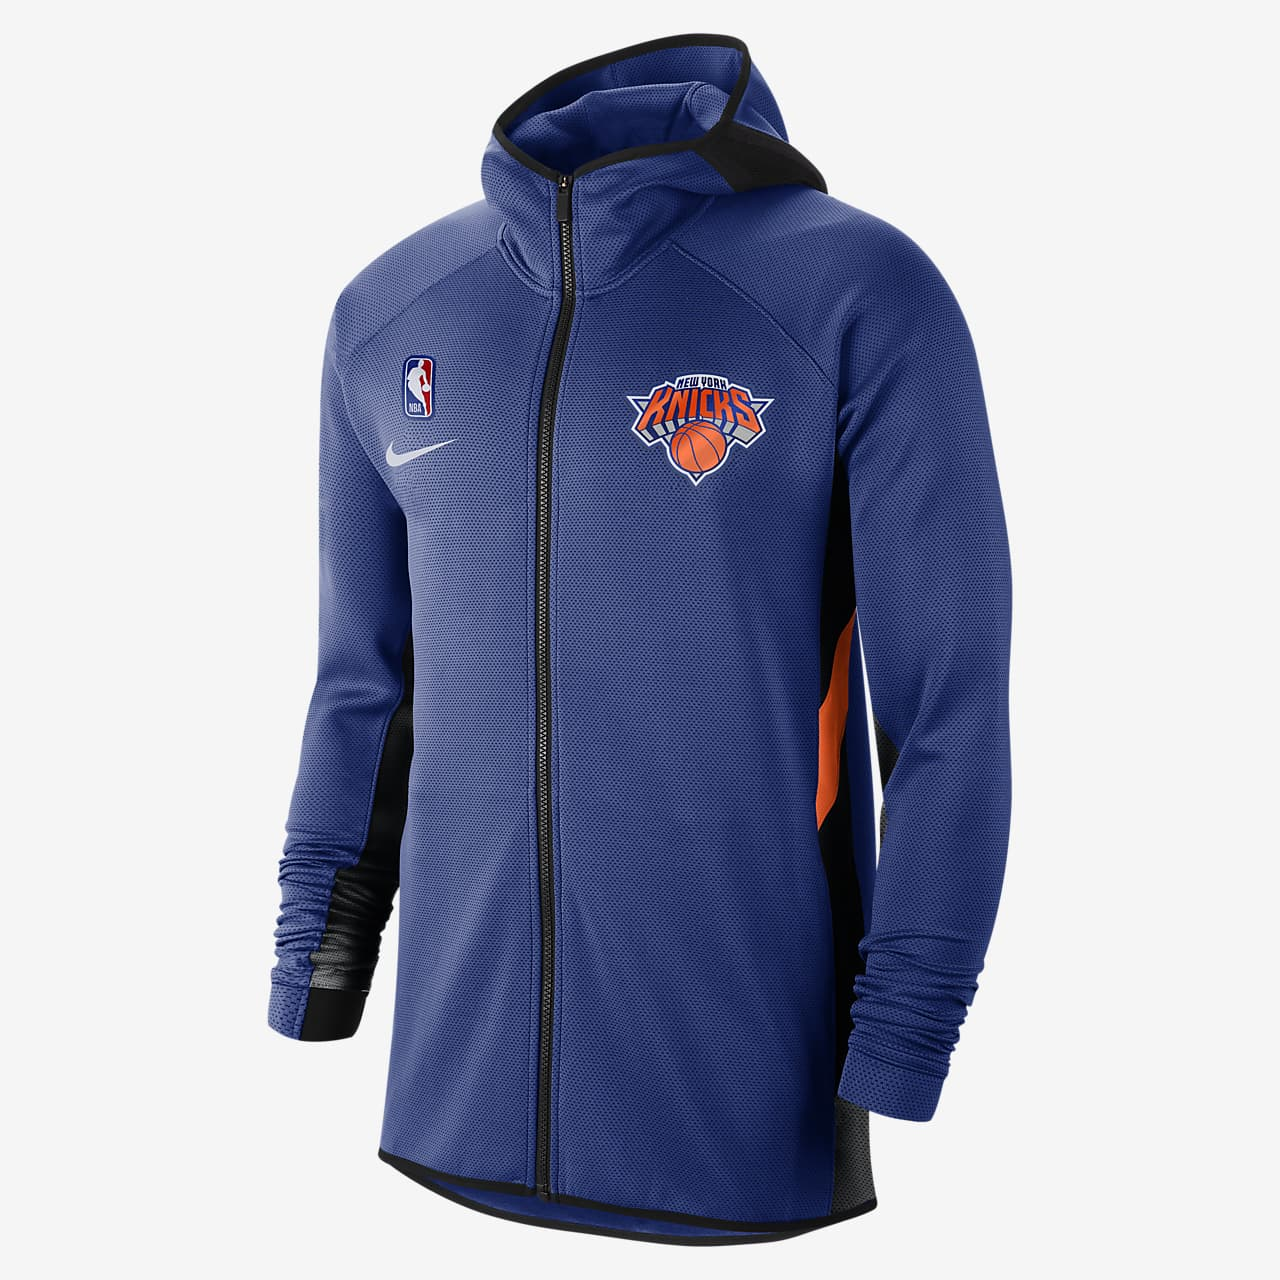 New York Knicks Nike Therma Flex Showtime Men's NBA Hoodie